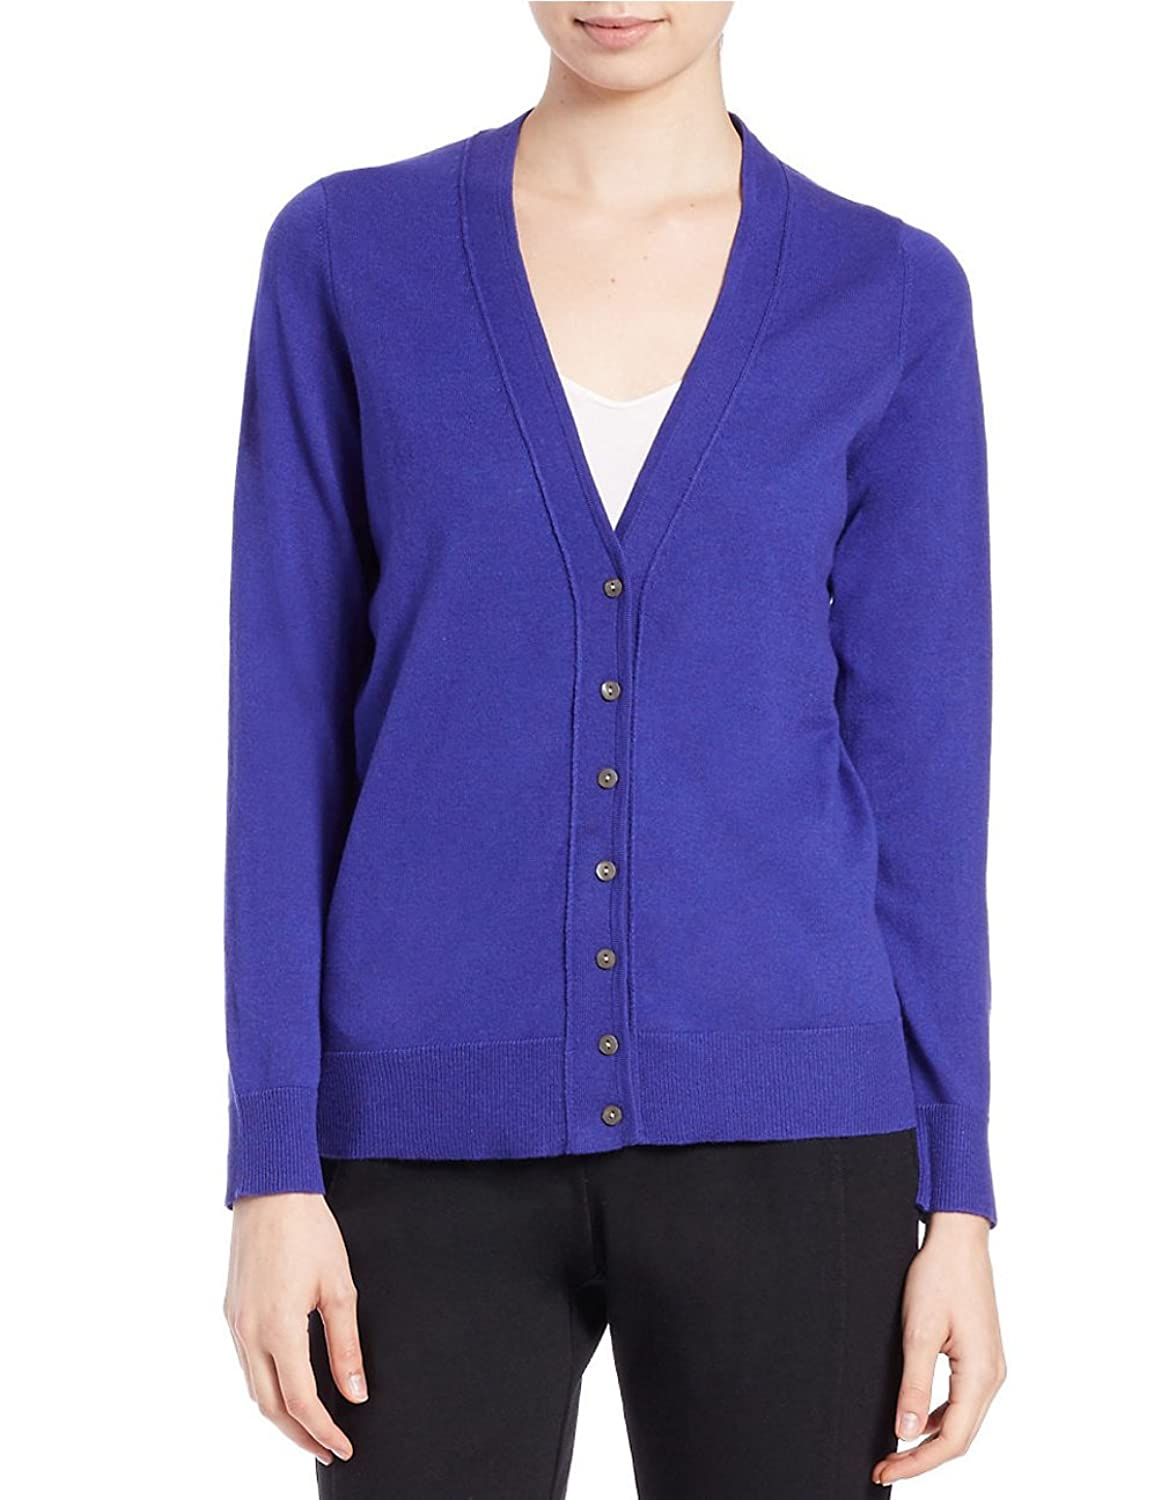 Eileen fisher Button-front Wool-blend Cardigan in Purple (Violet)